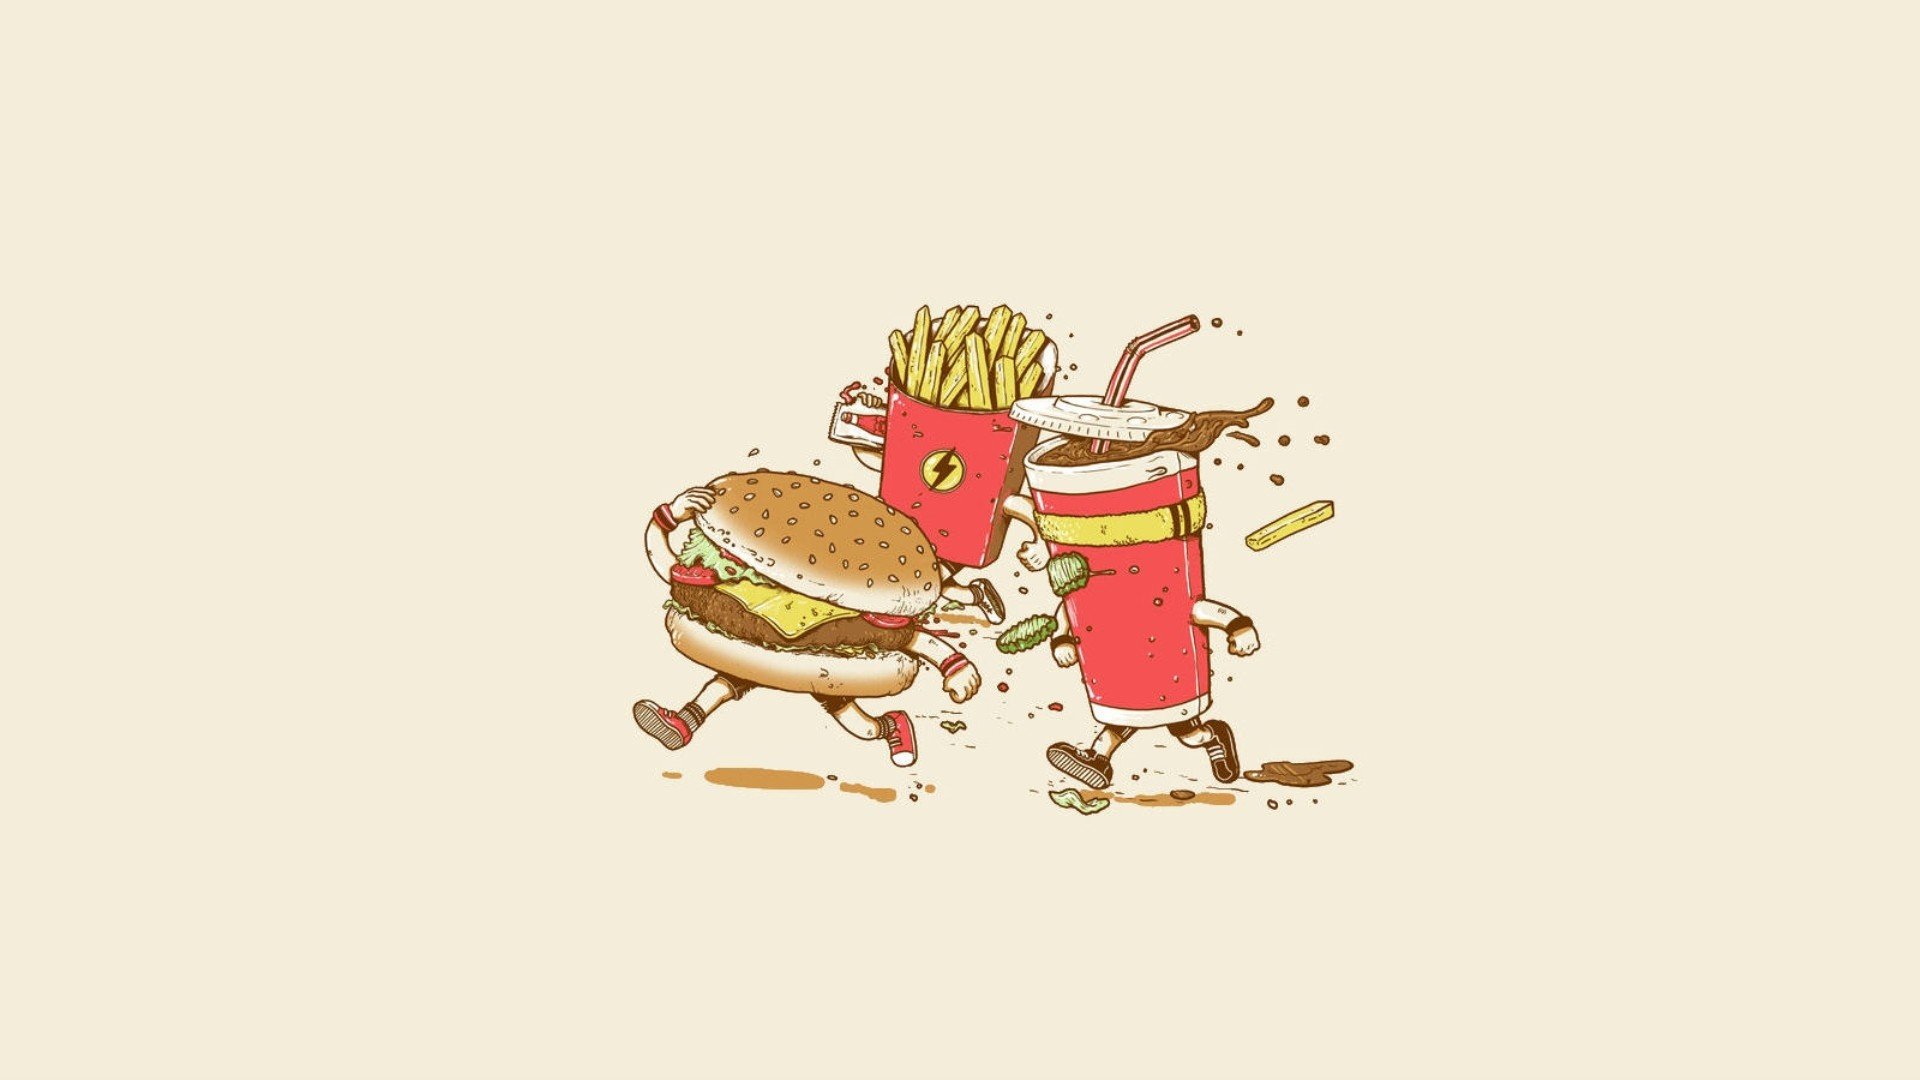 fast_food_cola_french_fries_burger_art_102589_1920x1080.jpg